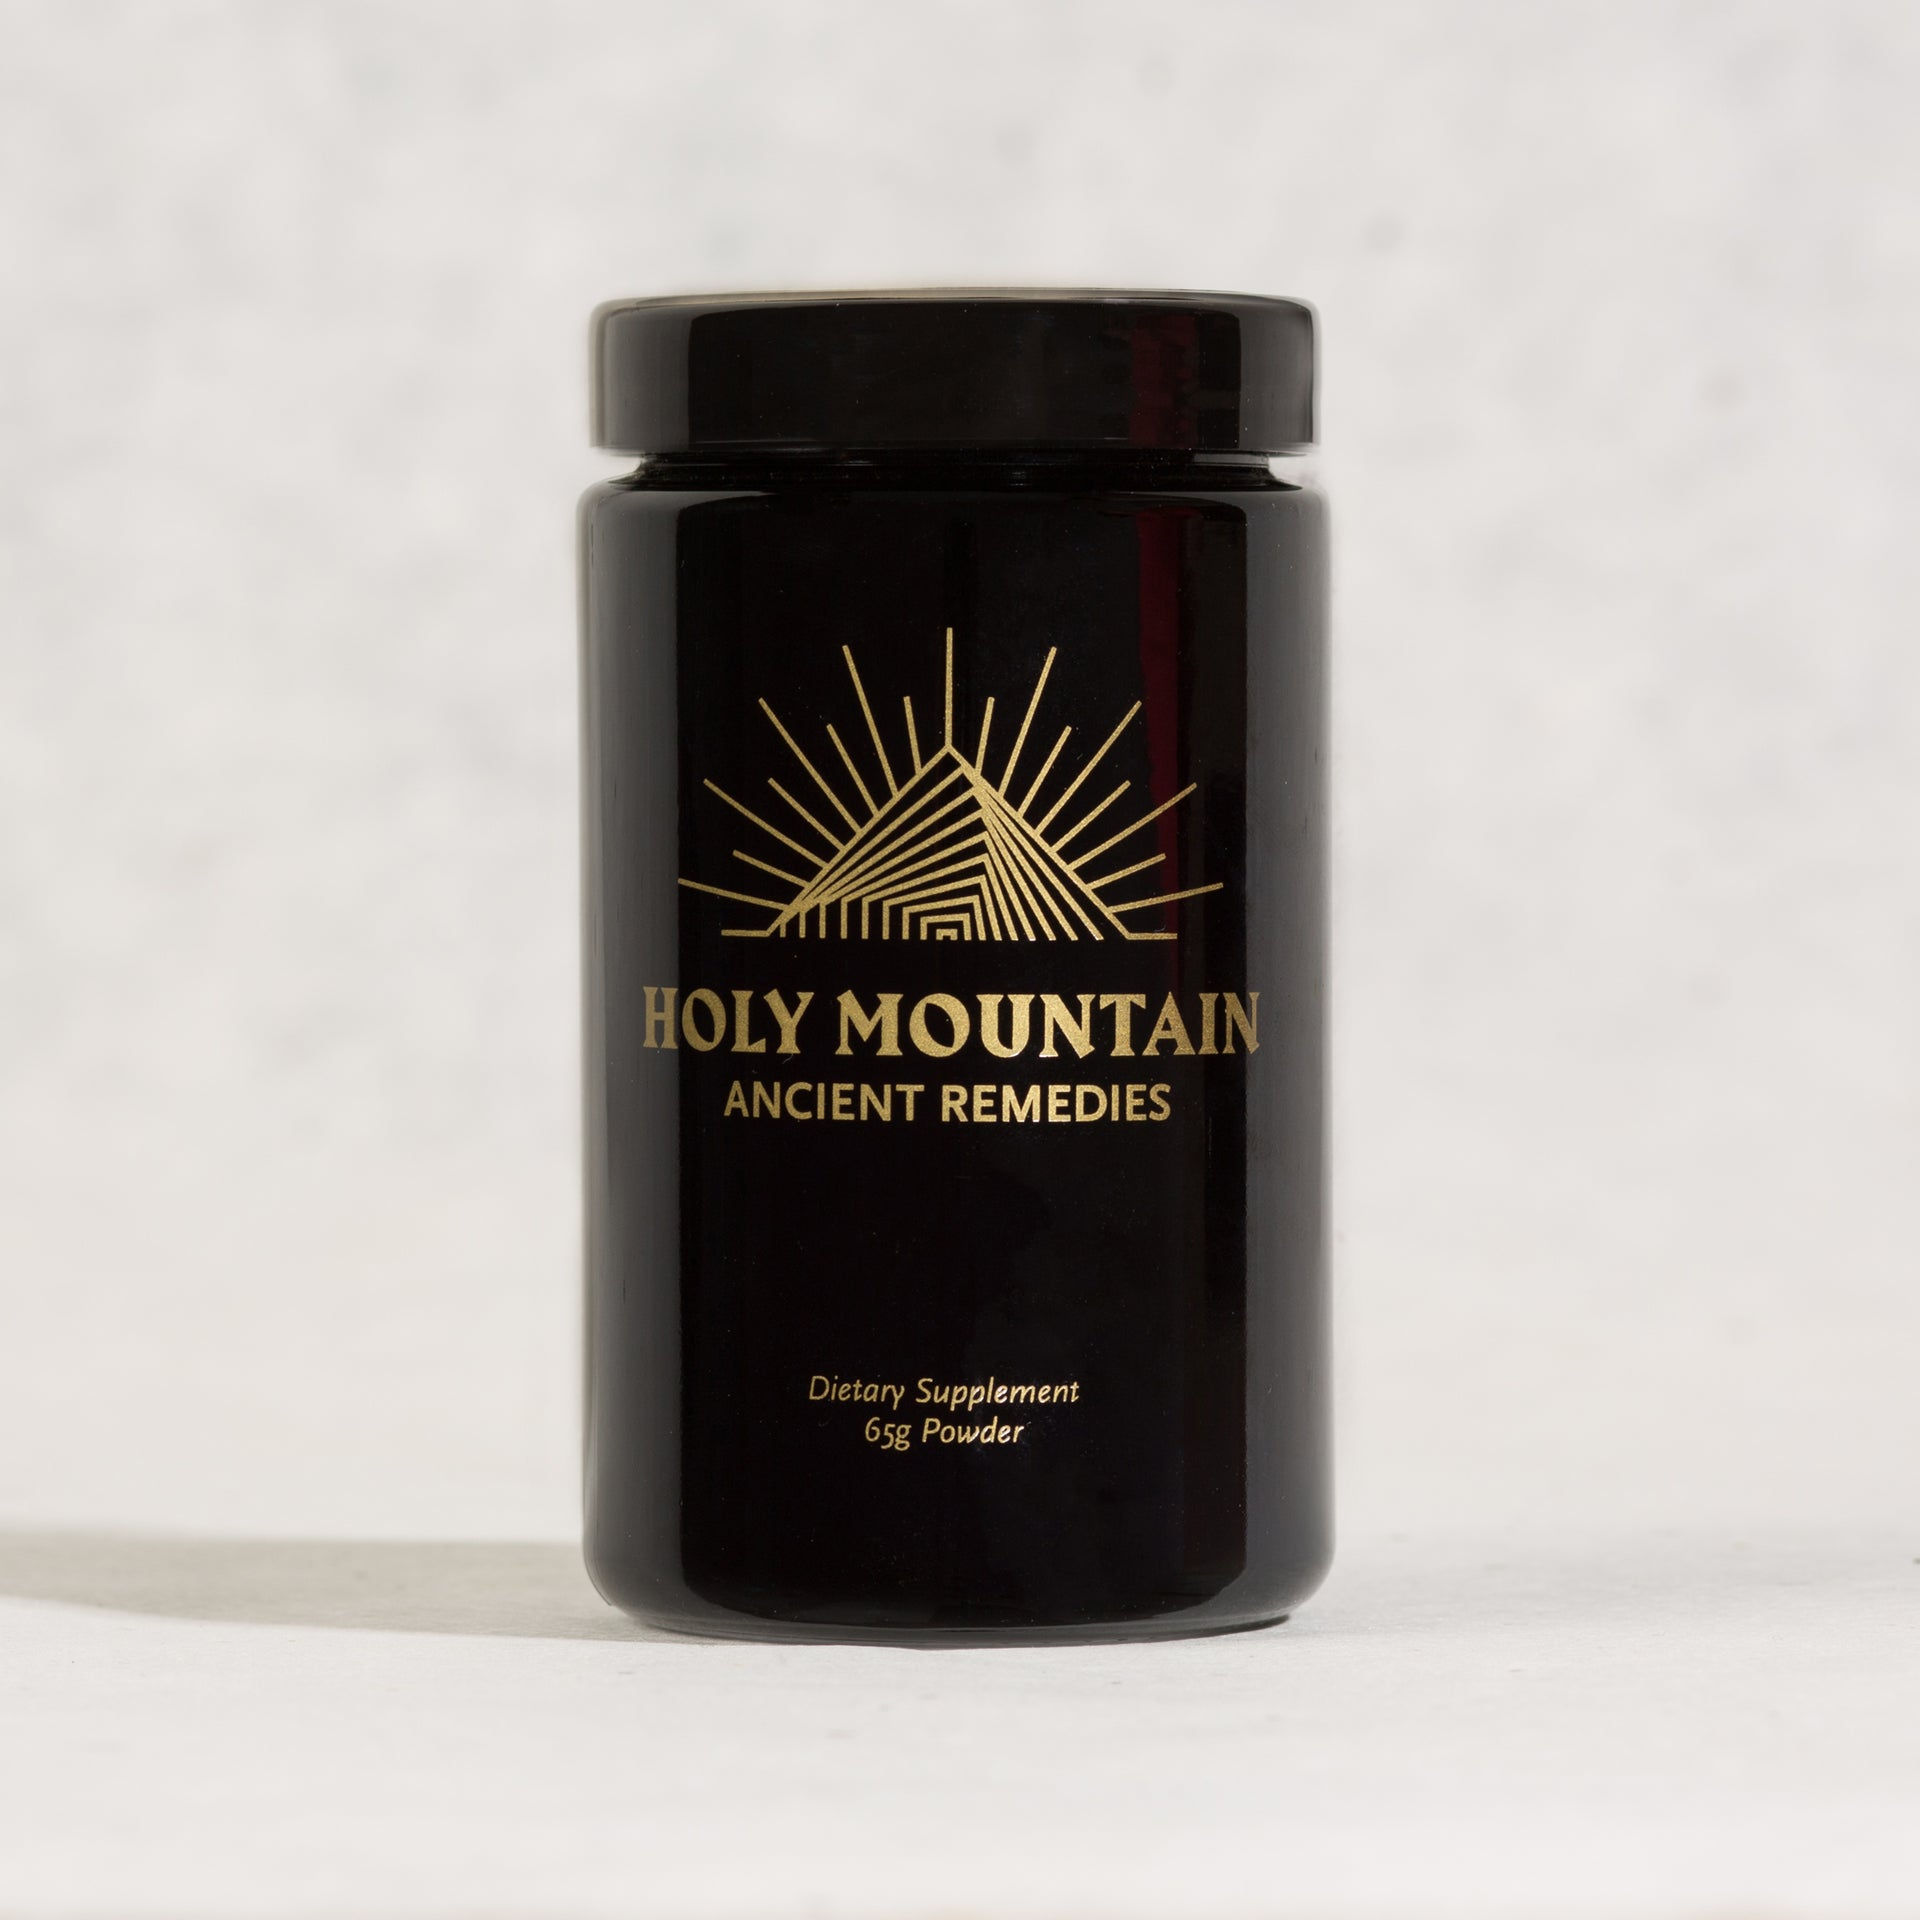 Holy Mountain Ancient Remedies